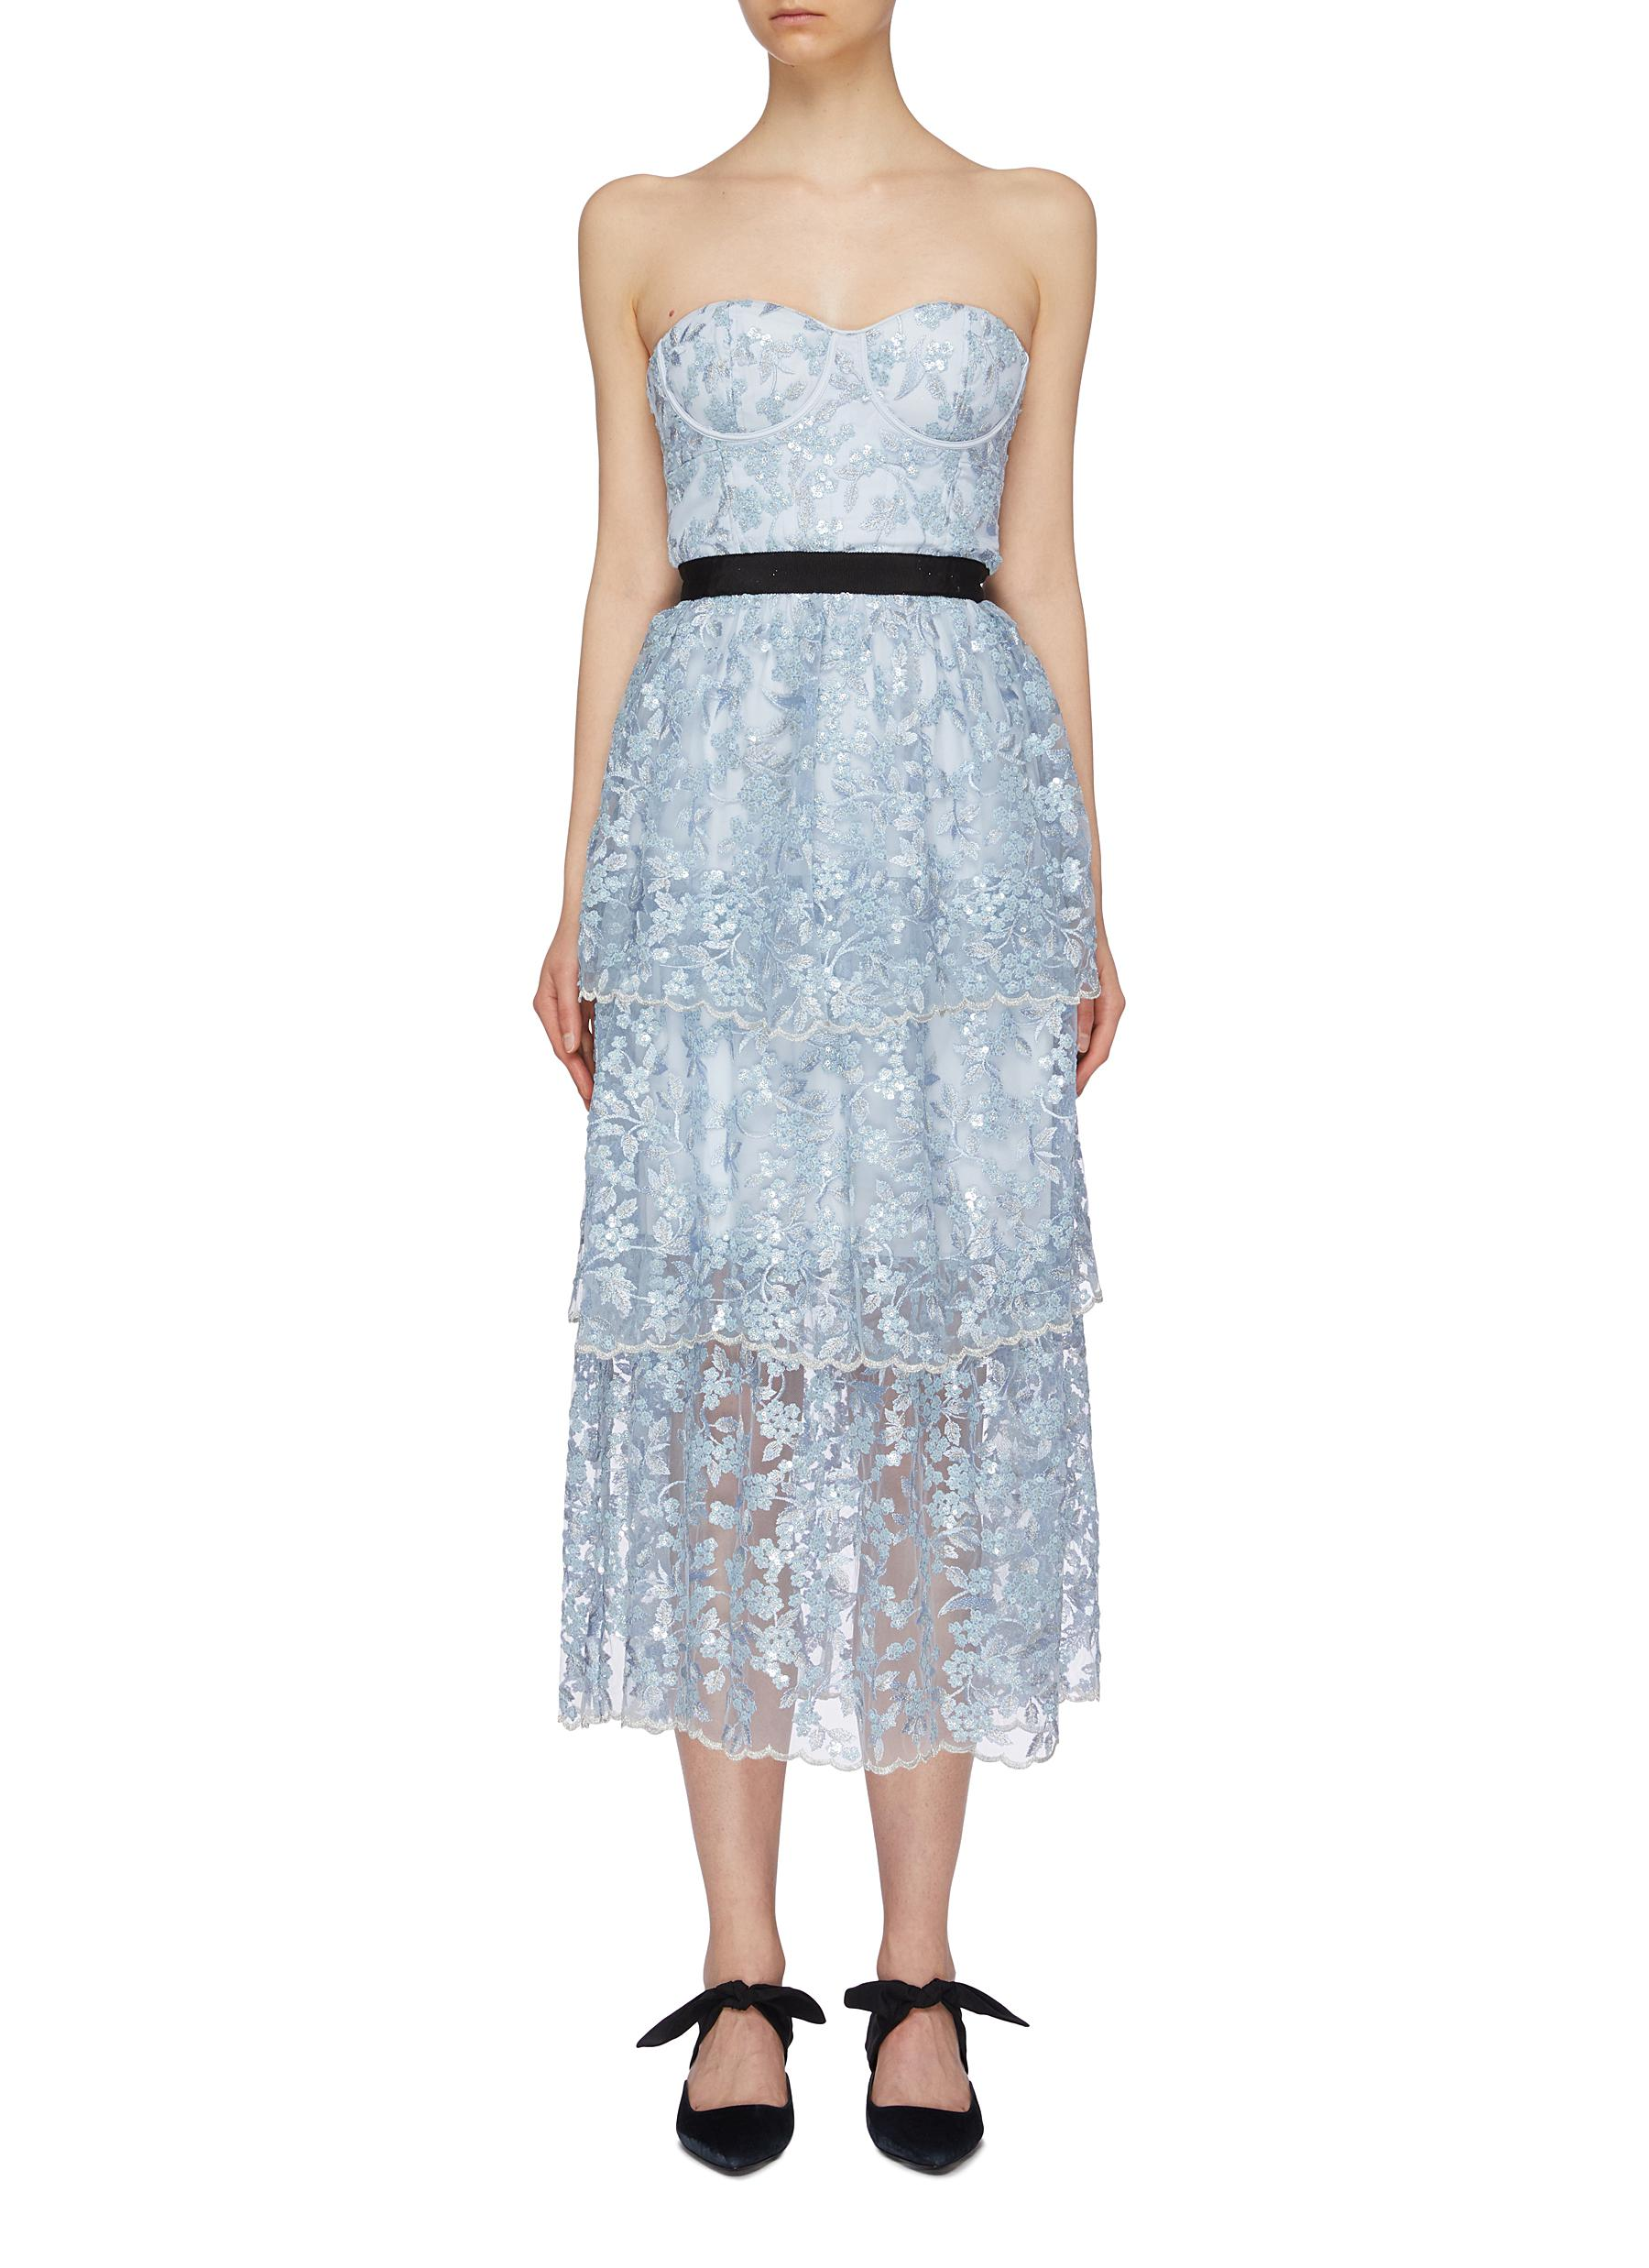 Sequin floral tiered mesh strapless midi dress by Self-Portrait